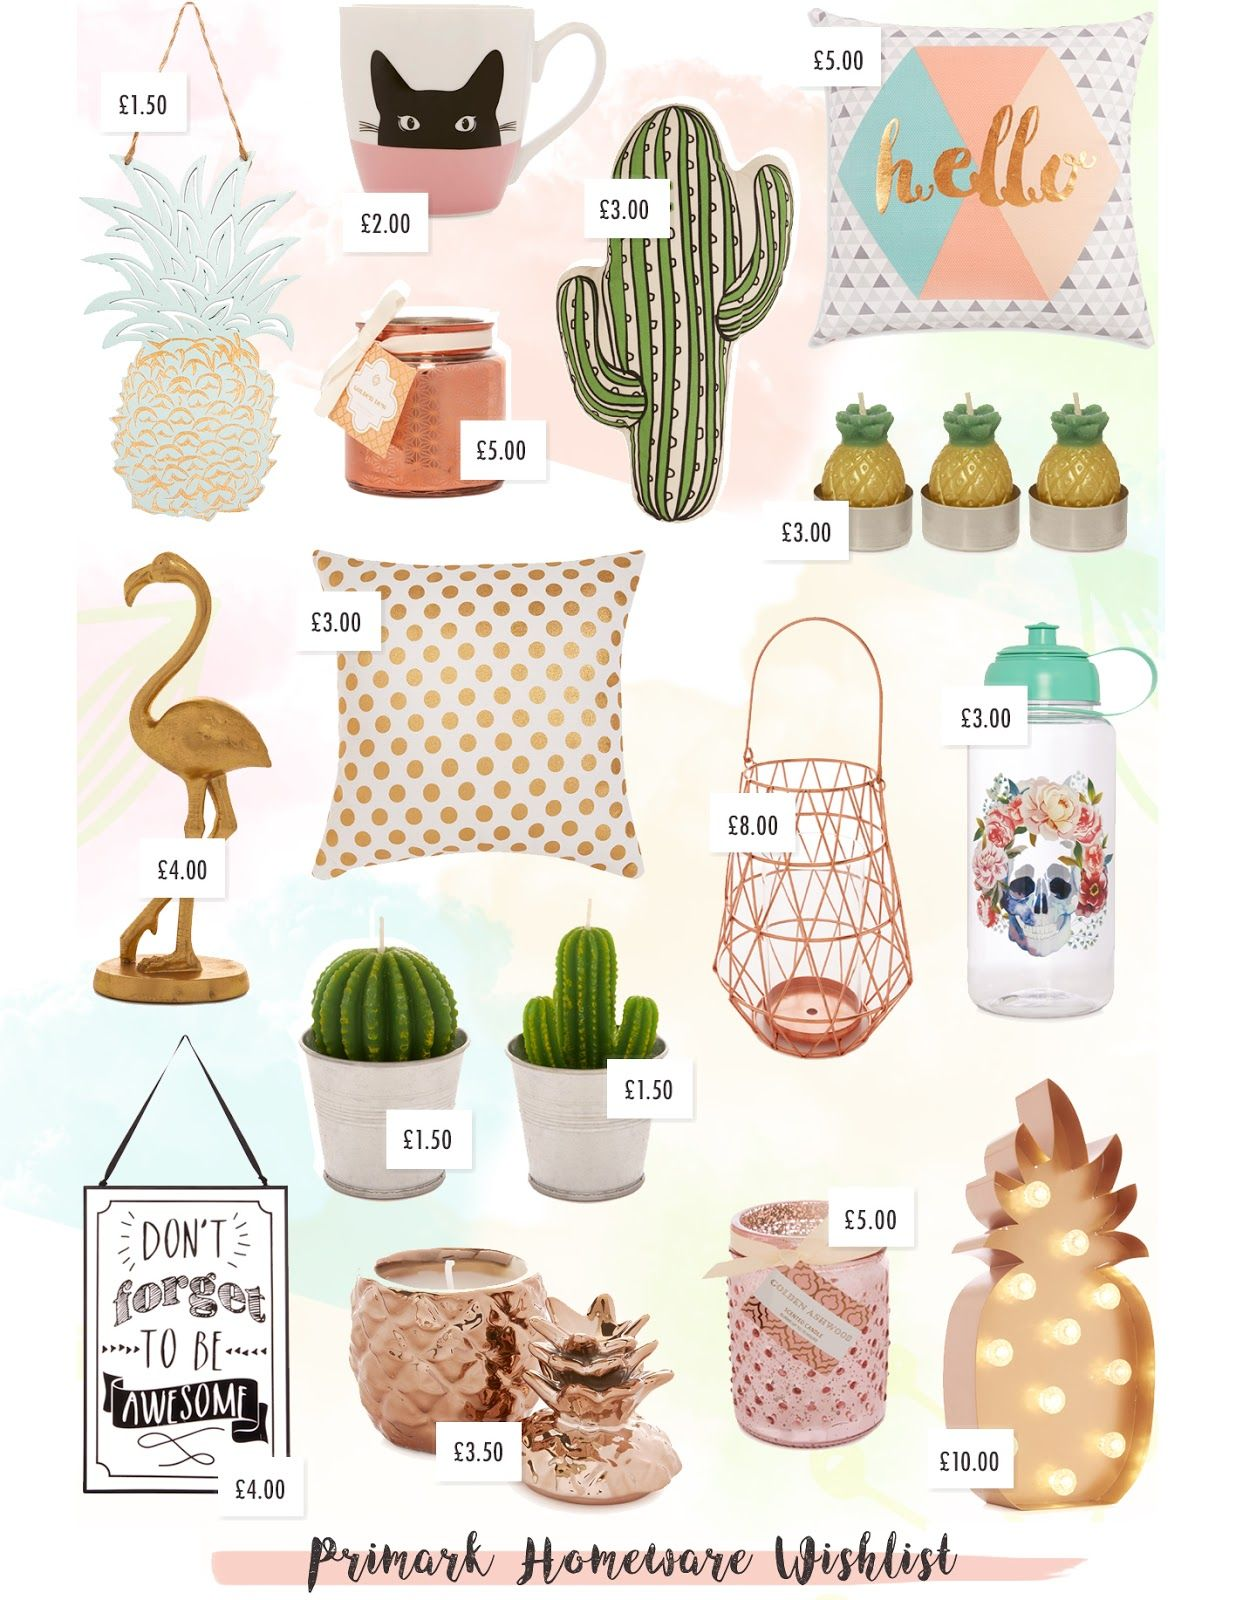 primark homeware wishlist | primark and bedrooms